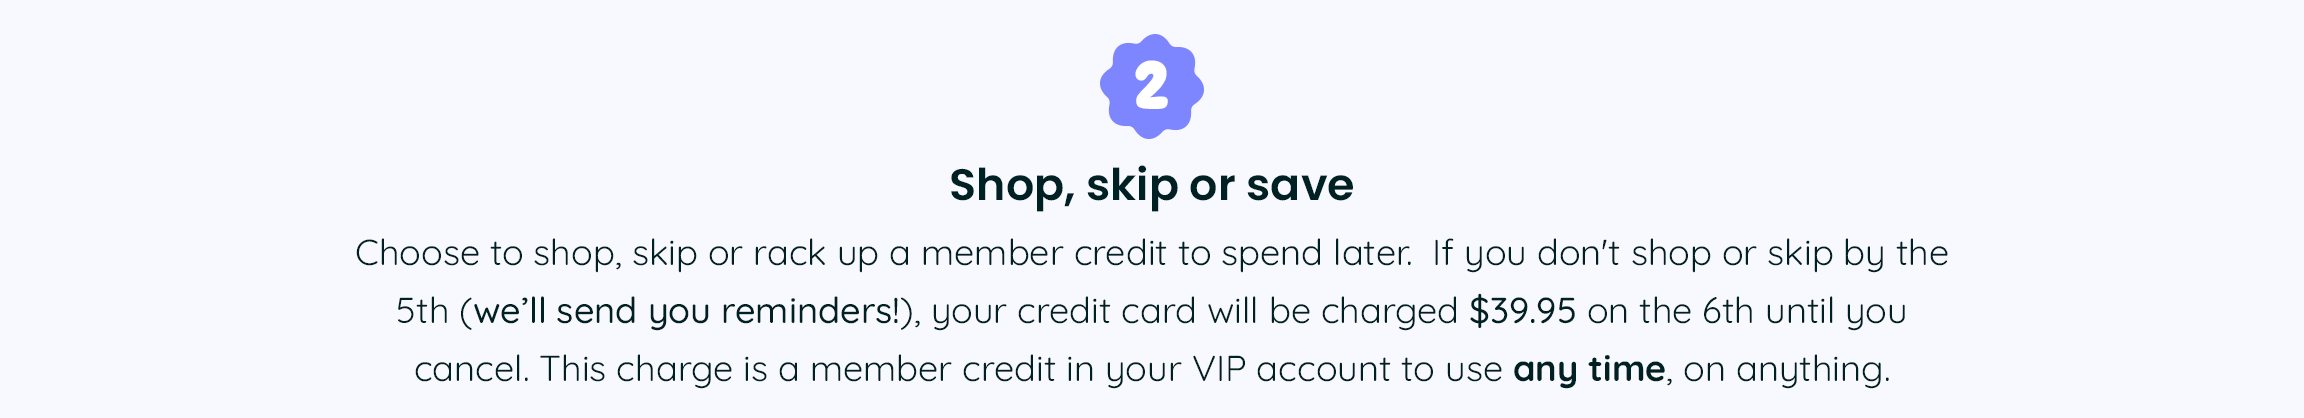 2. Shop, skip or save - Choose to shop, skip or rack up a member credit to spend later.  If you don't shop or skip by the 5th (we'll send you reminders!), your credit card will be charged 39.95 on the 6th until you cancel. This charge is a member credit in your VIP account to use any time, on anything.